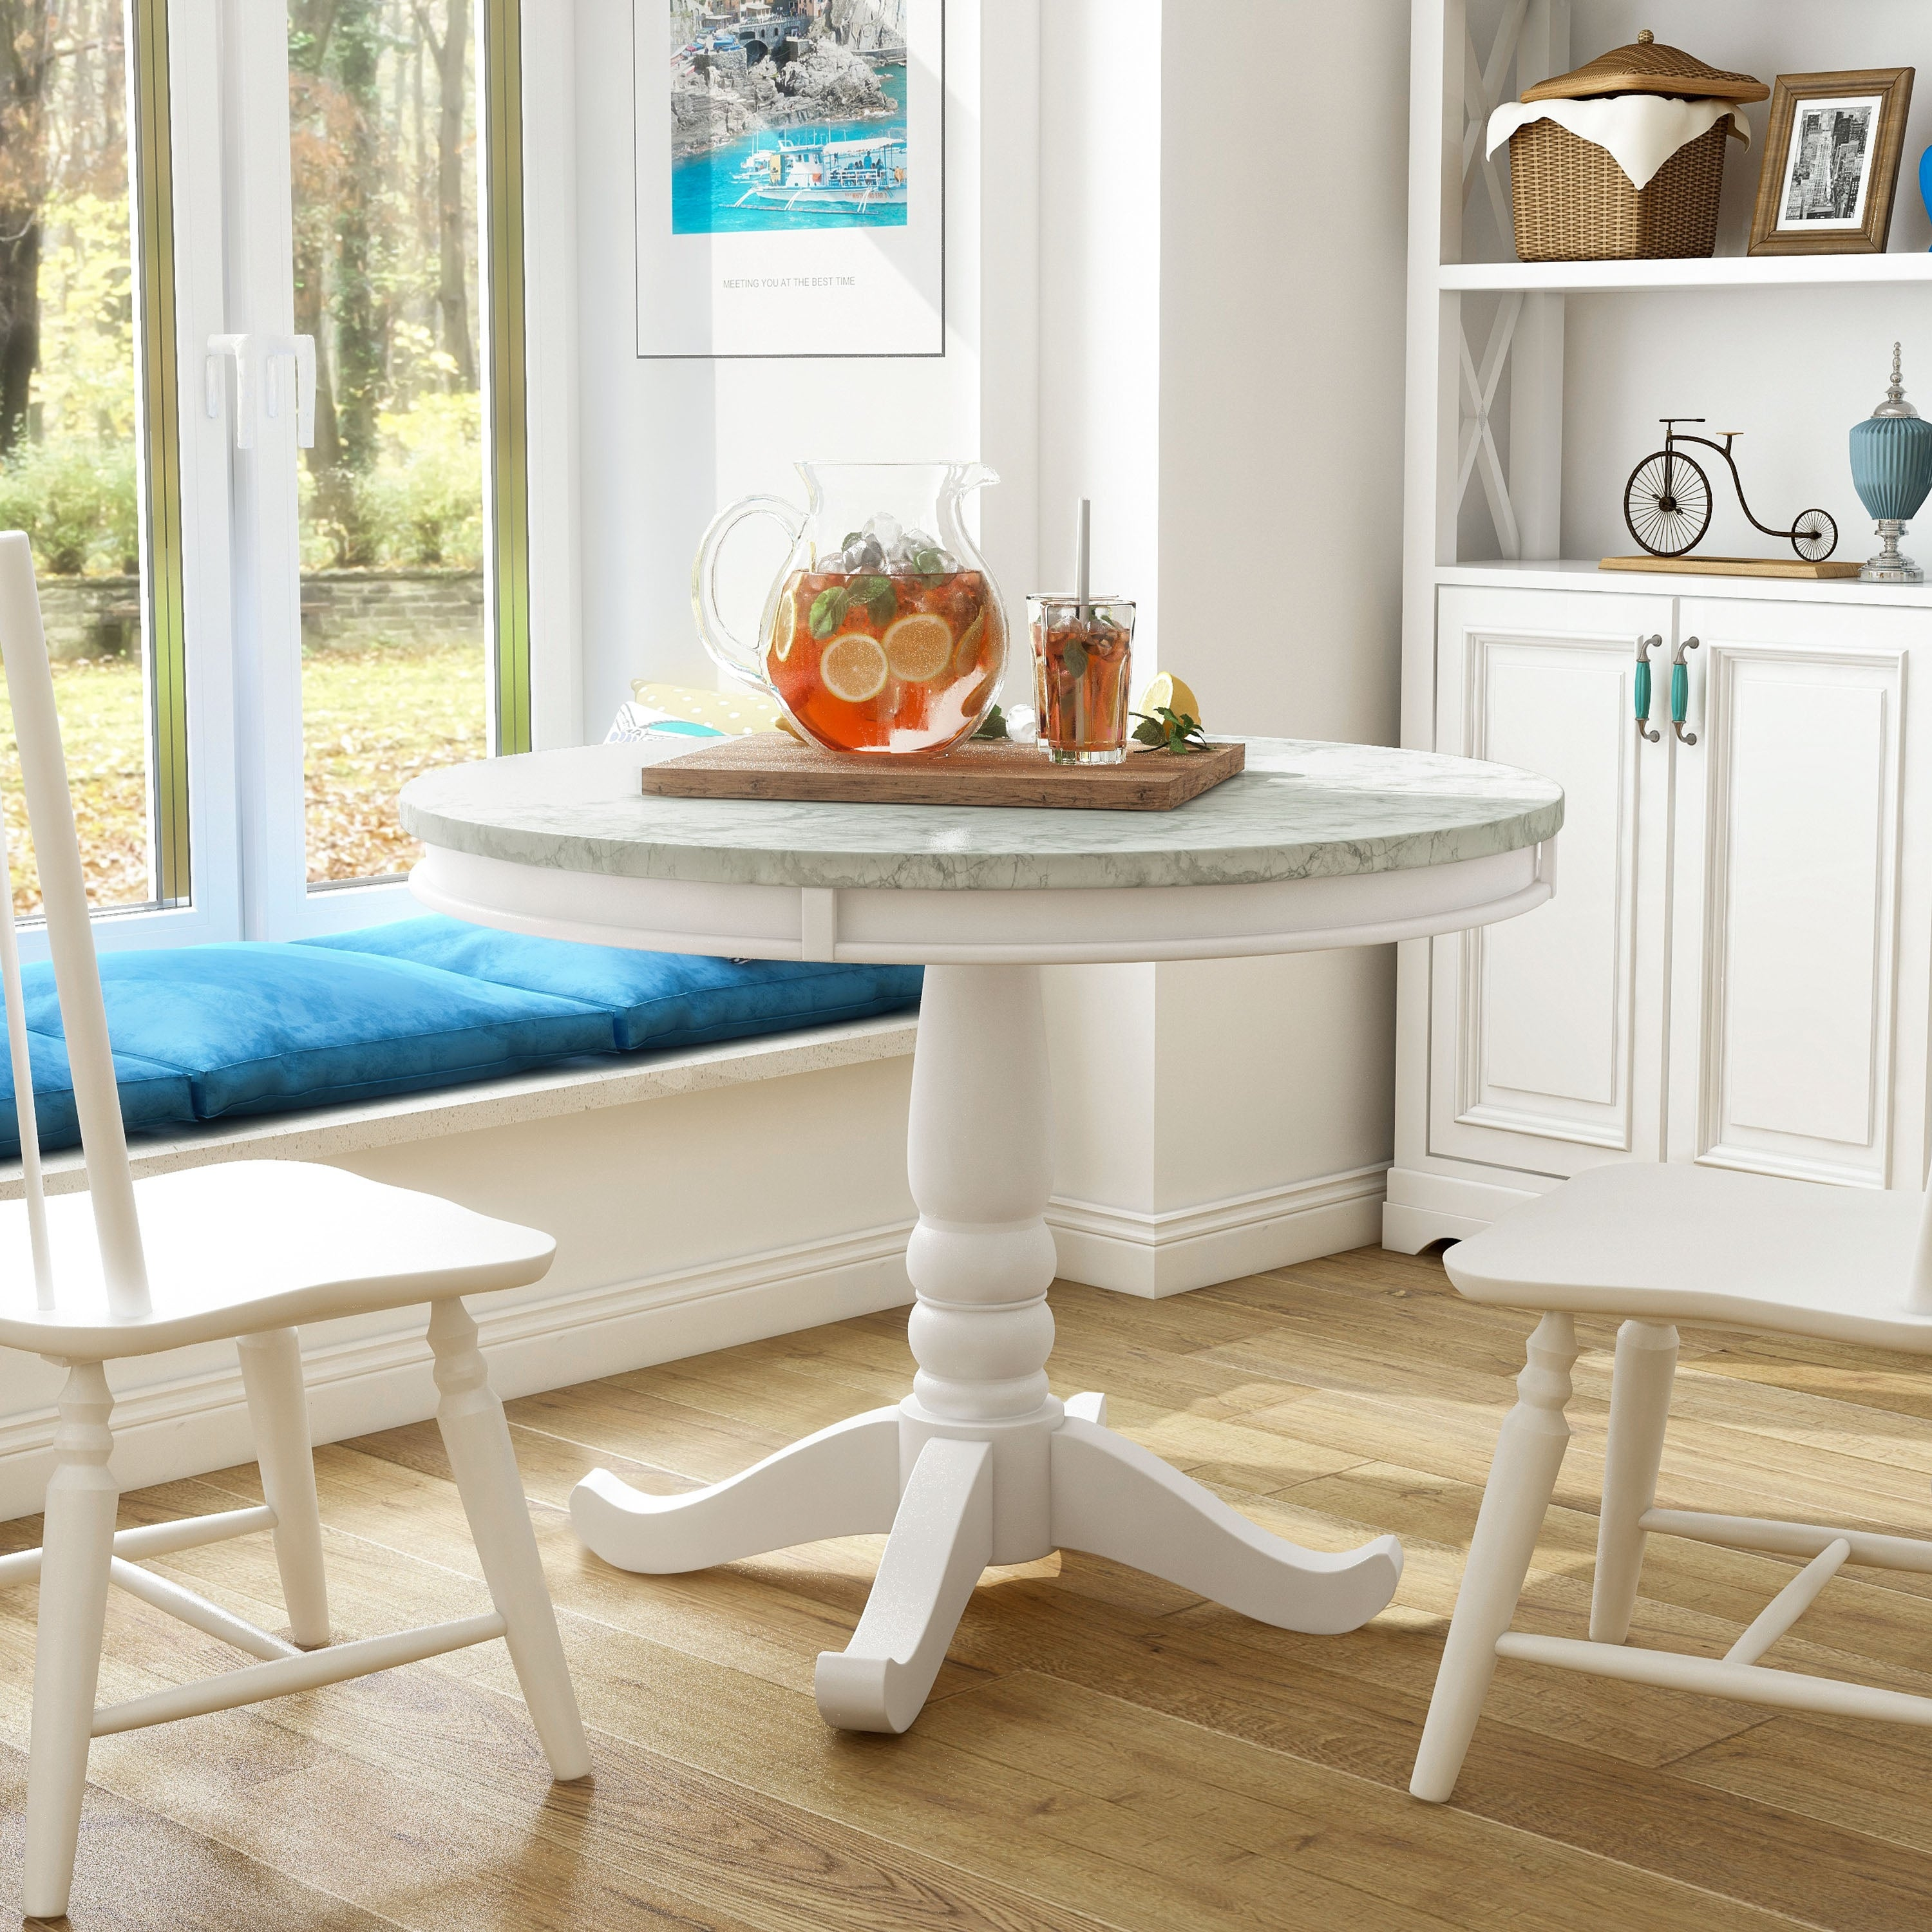 Furniture Of America Ten Country White 42 Inch Round Dining Table Overstock 17745271